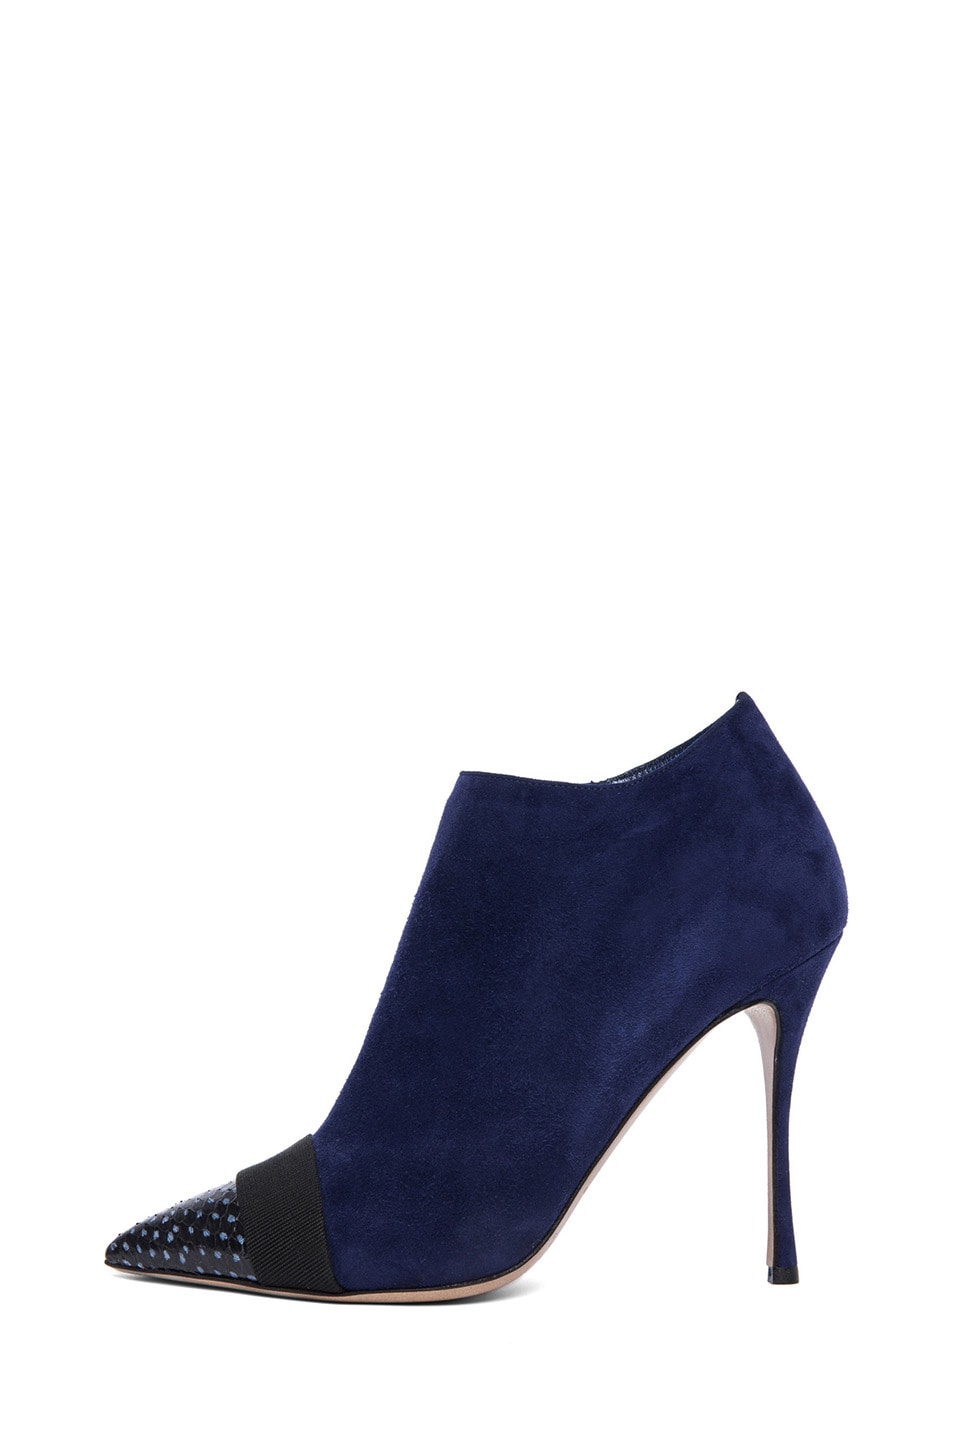 Image 1 of Nicholas Kirkwood Suede Ankle Boots in Black & Indigo